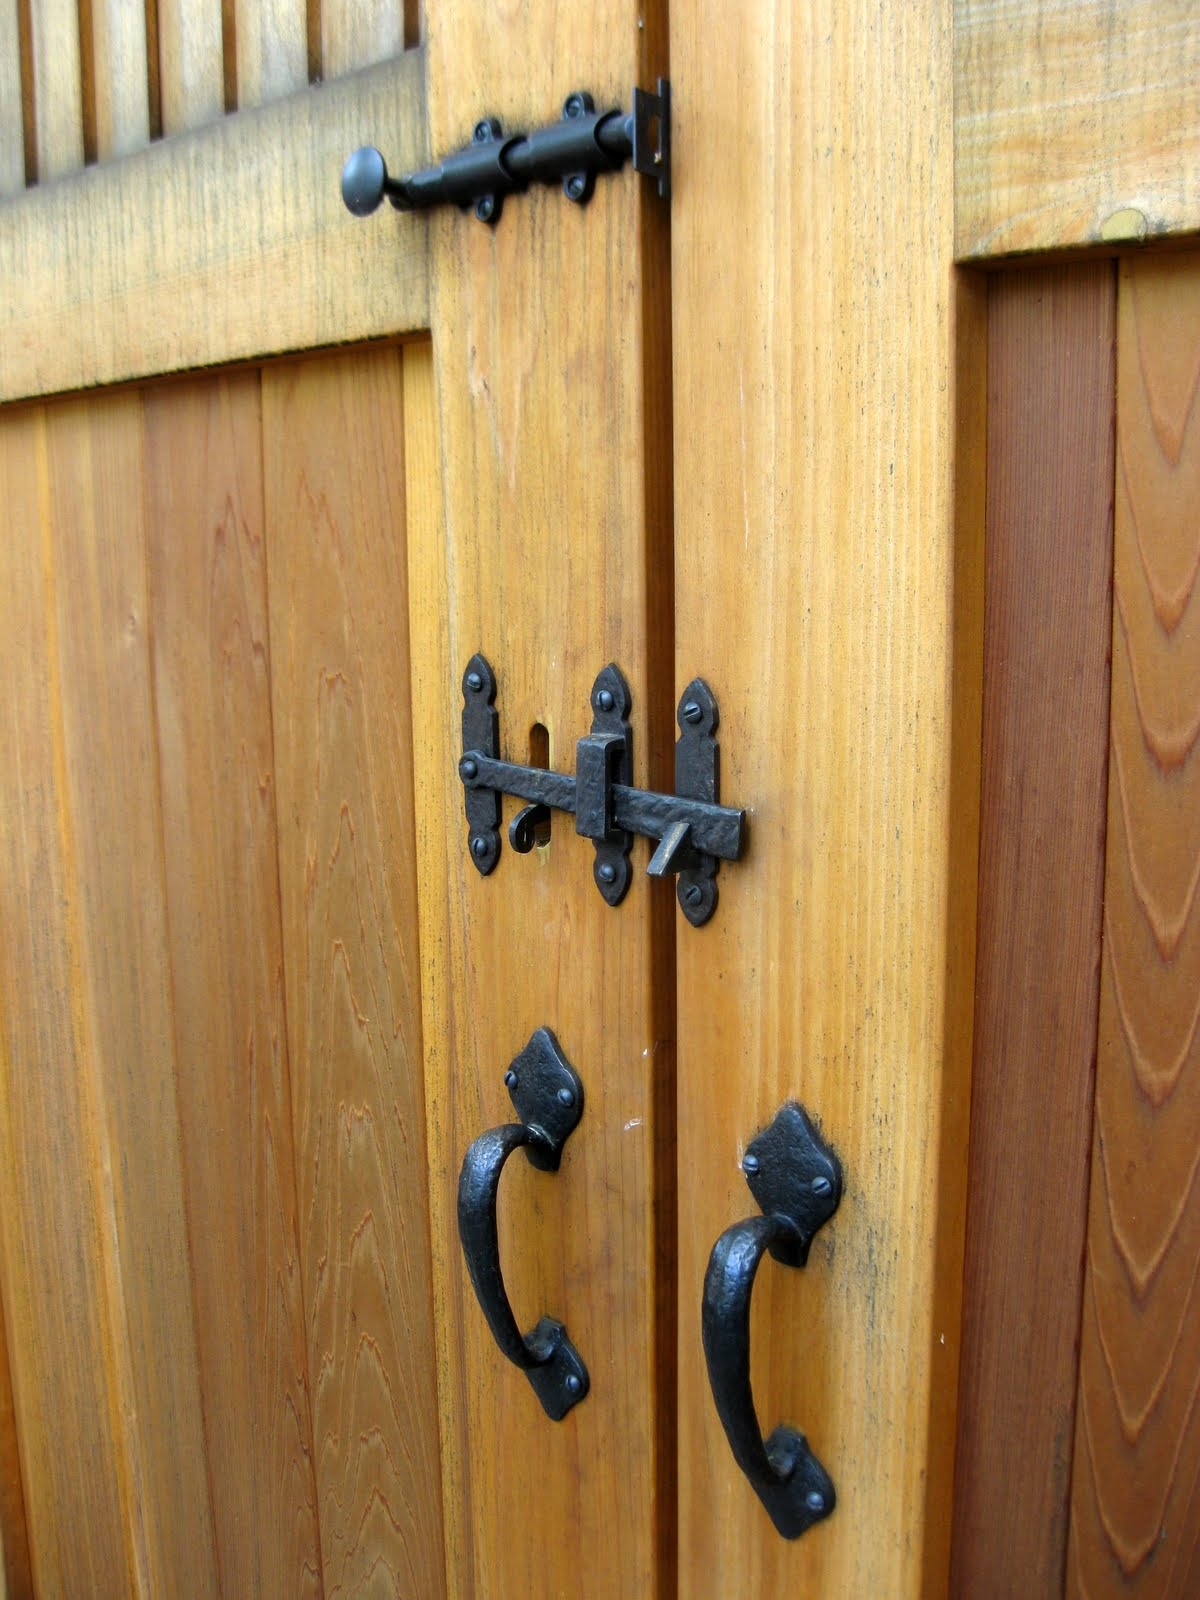 sheds door itm long gate bolts key garage locks shed enfield van